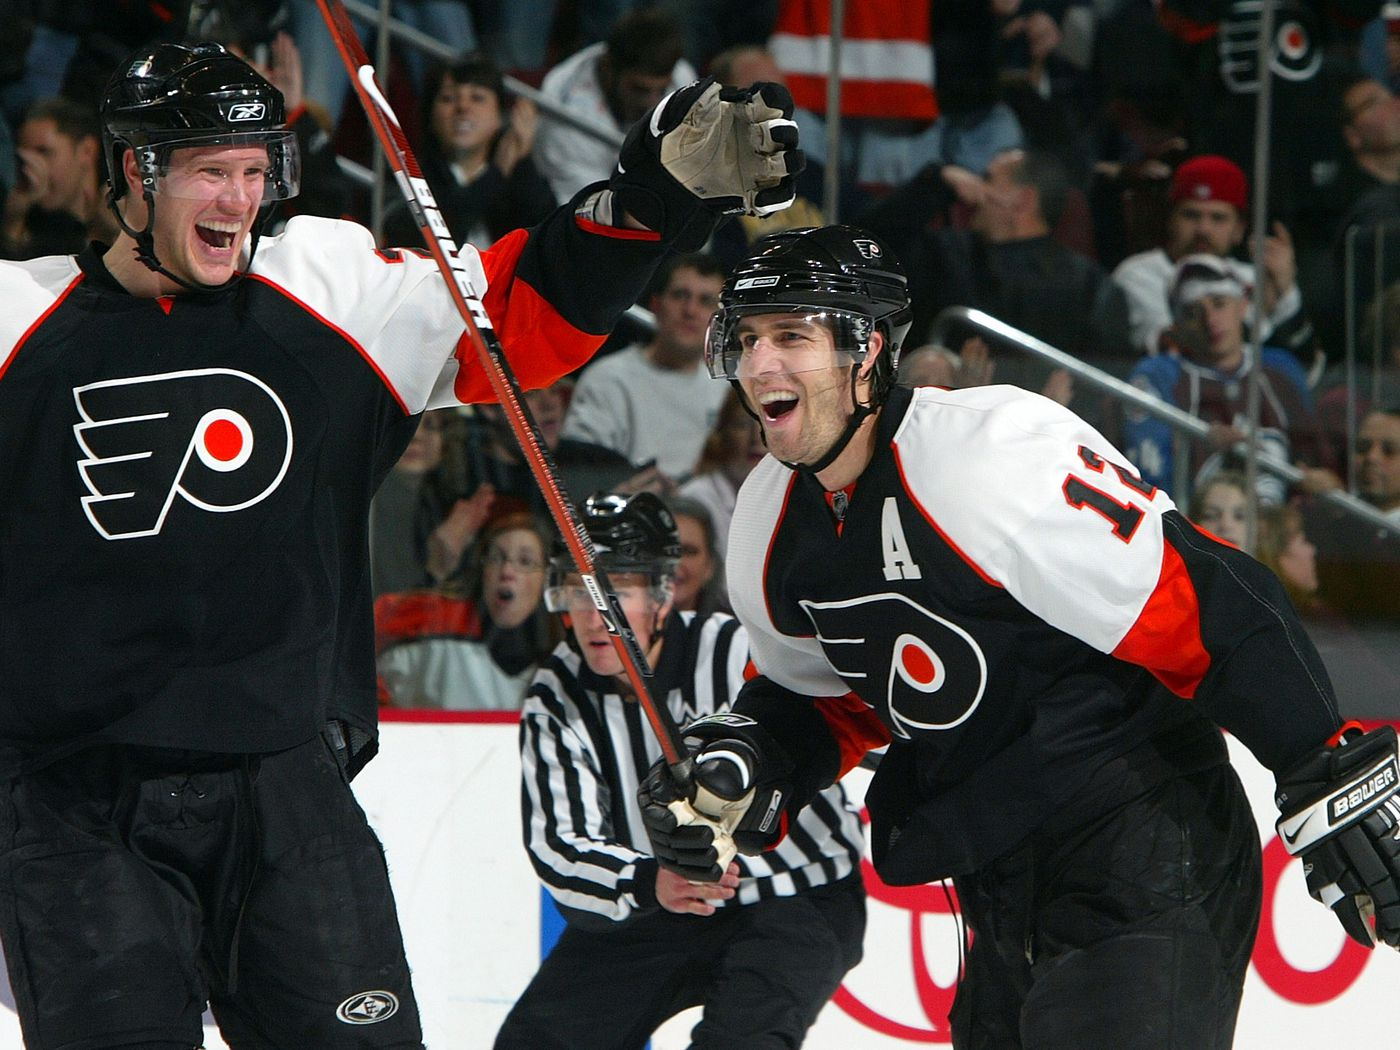 dc9c52a19 Today in Philadelphia Flyers history: Streak hits 27, comeback win for  Neilson, Tocchet Gordie Howe hat trick, Gagne buries Avs - Broad Street  Hockey